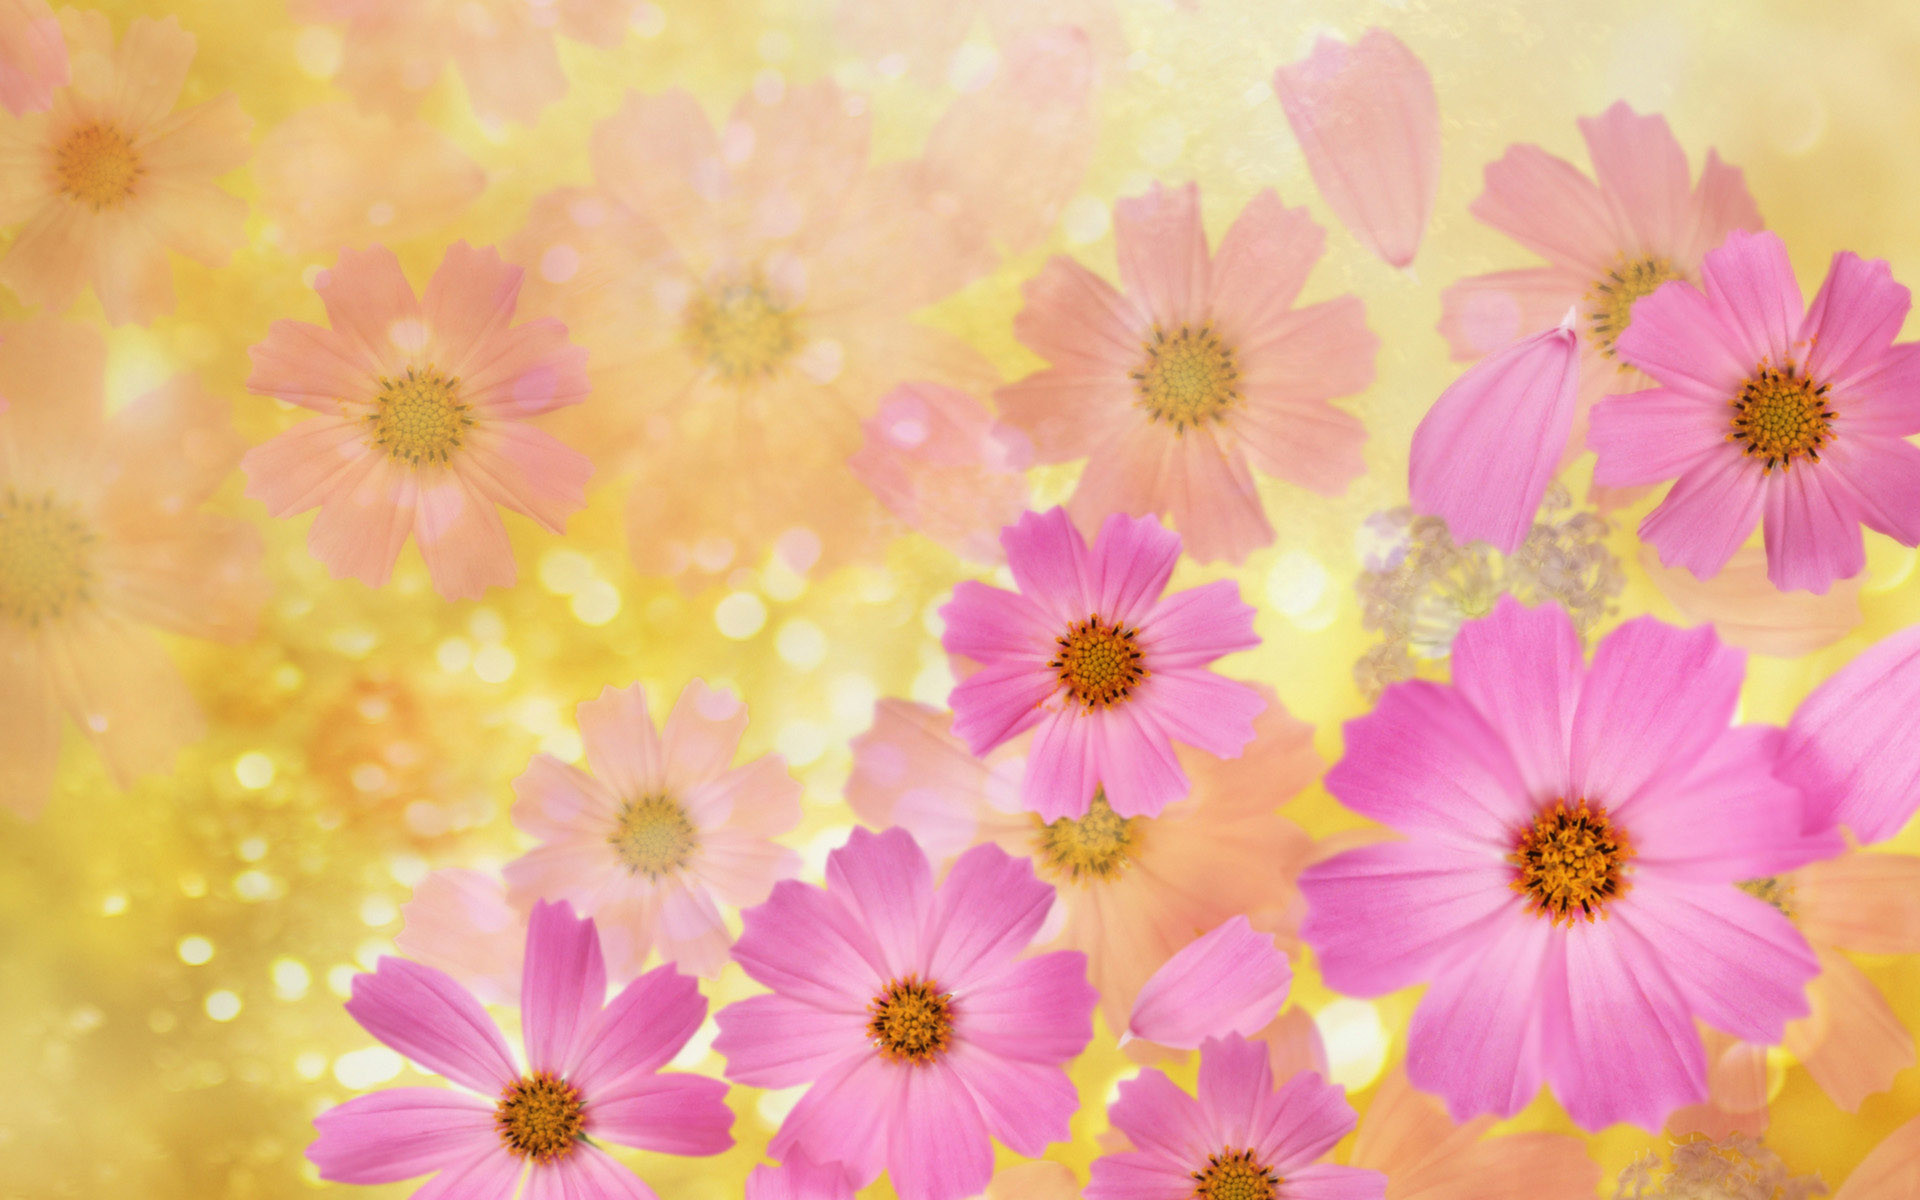 1920x1200 flower backgrounds | Cosmos flowers Wallpaper | High Quality  Wallpapers,Wallpaper Desktop .